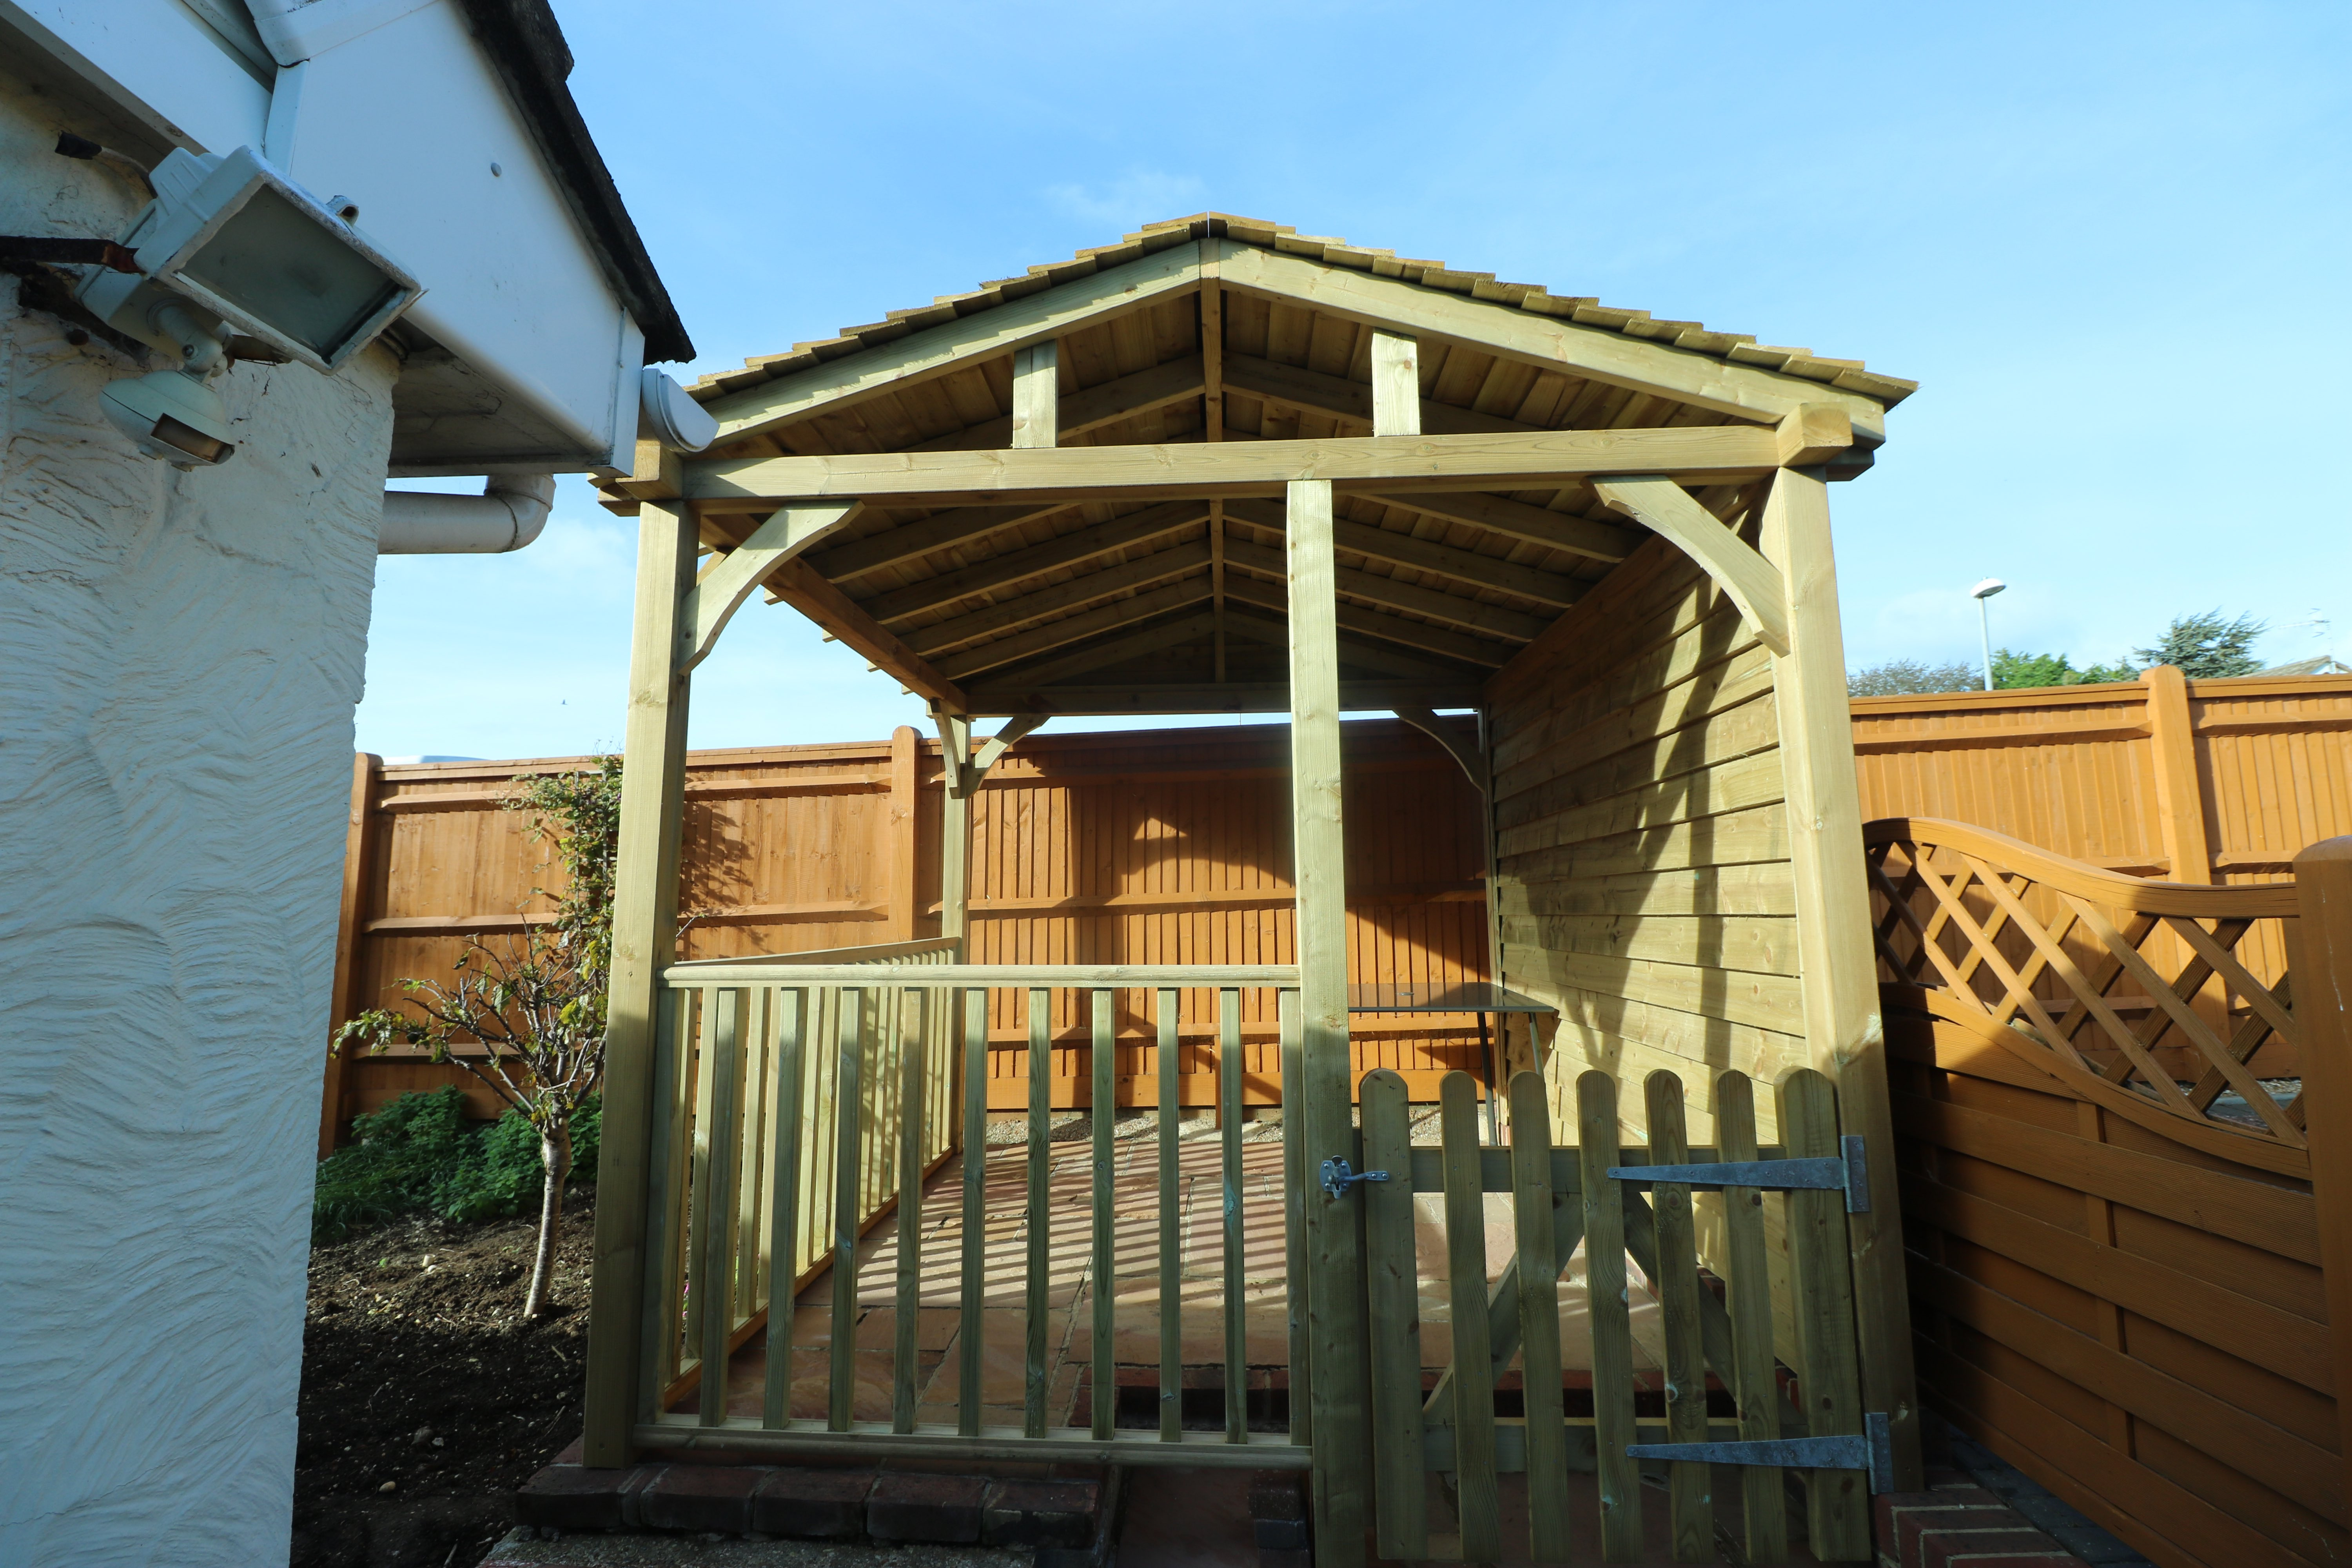 Gazebo with Balustrade